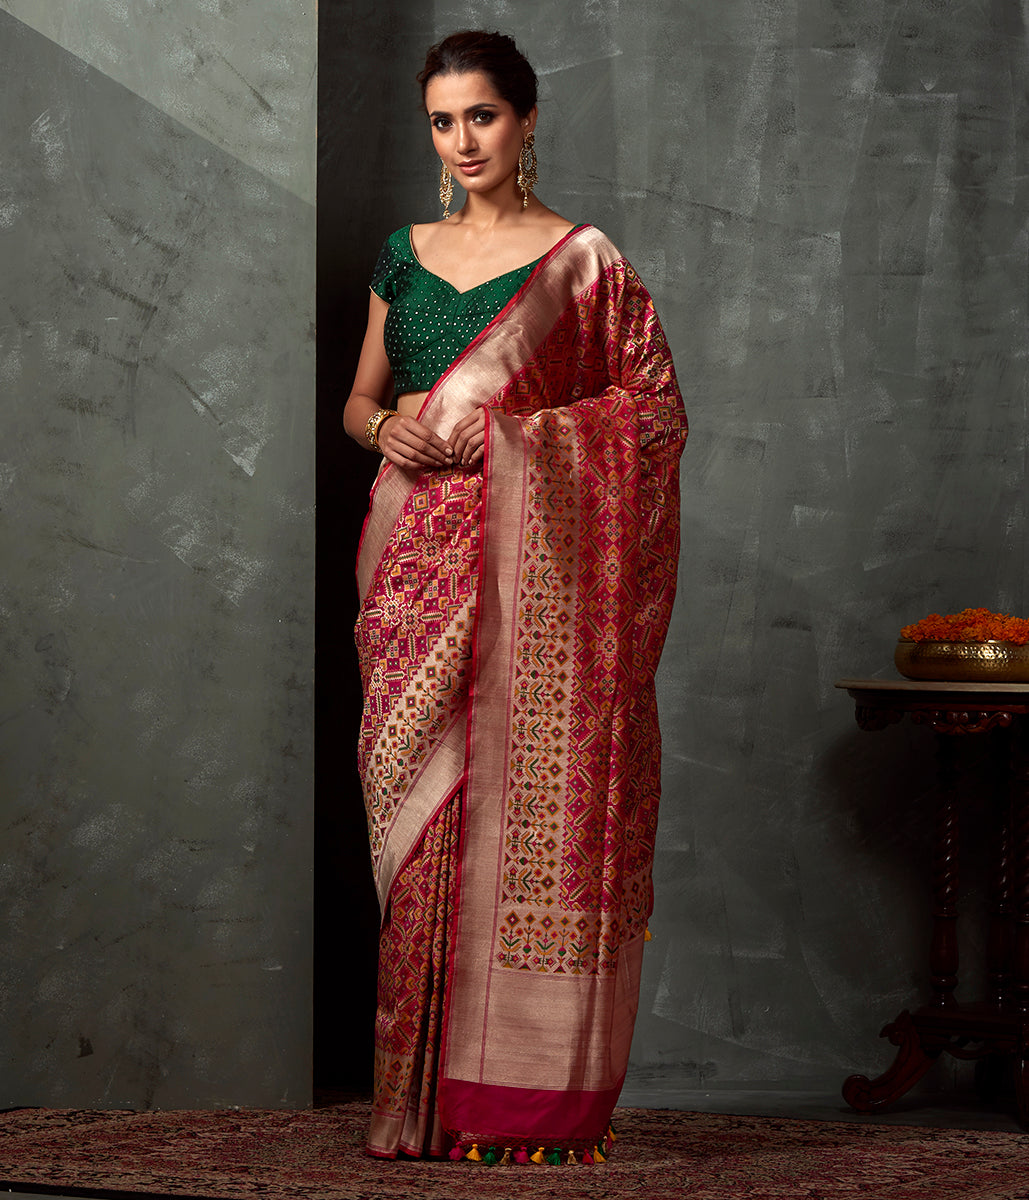 Handwoven Majenta Patola Saree with Paithani Border